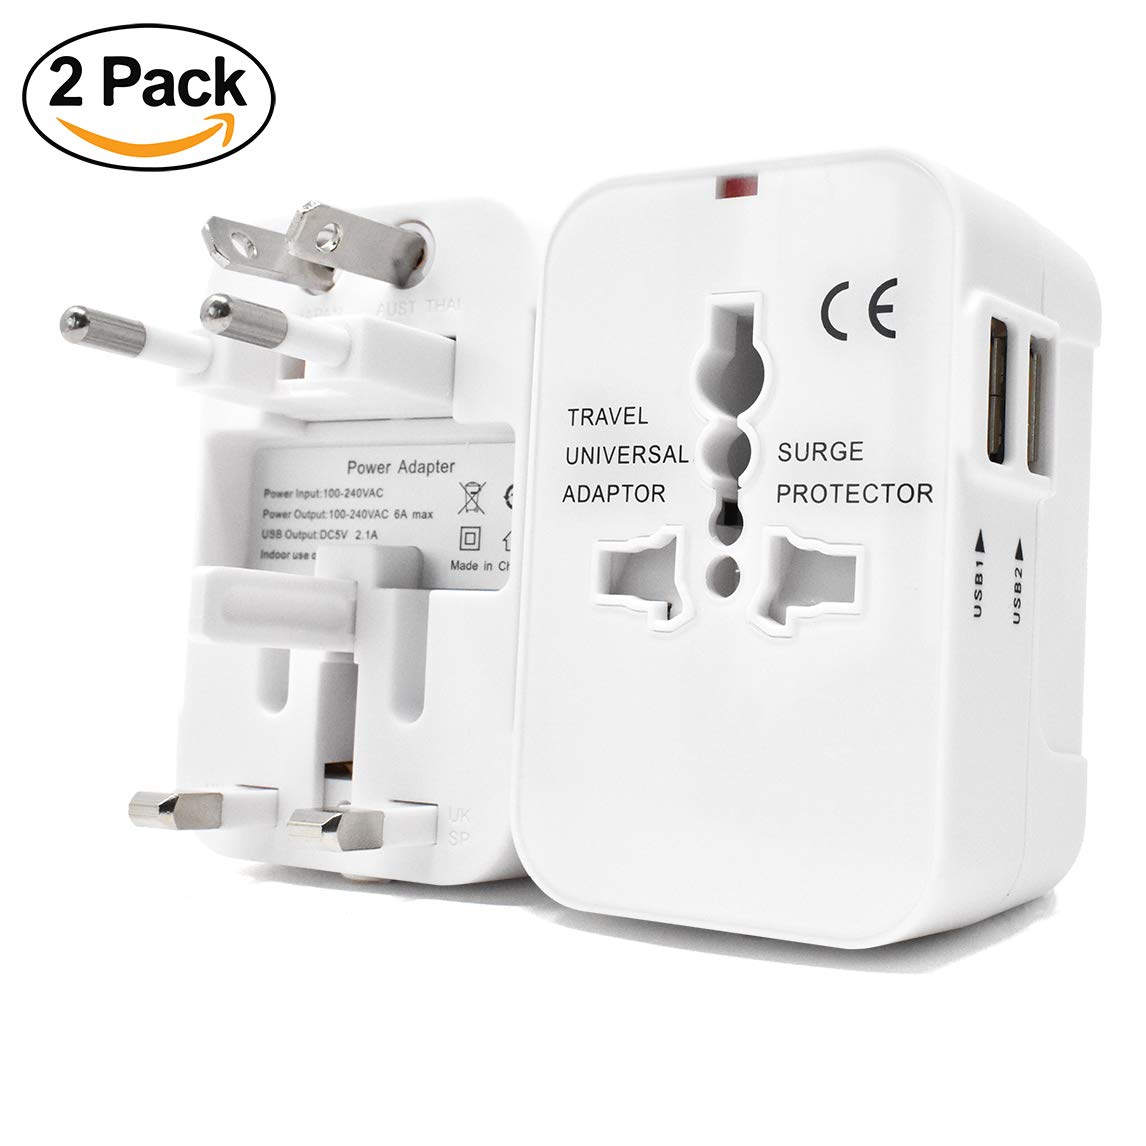 International Universal All in One Worldwide Travel Adapter Wall Charger AC Power Plug Adapter with Dual USB Charging Ports for USA EU UK AUS European Cell Phone Laptop | 2 Pack Family Deal (White)